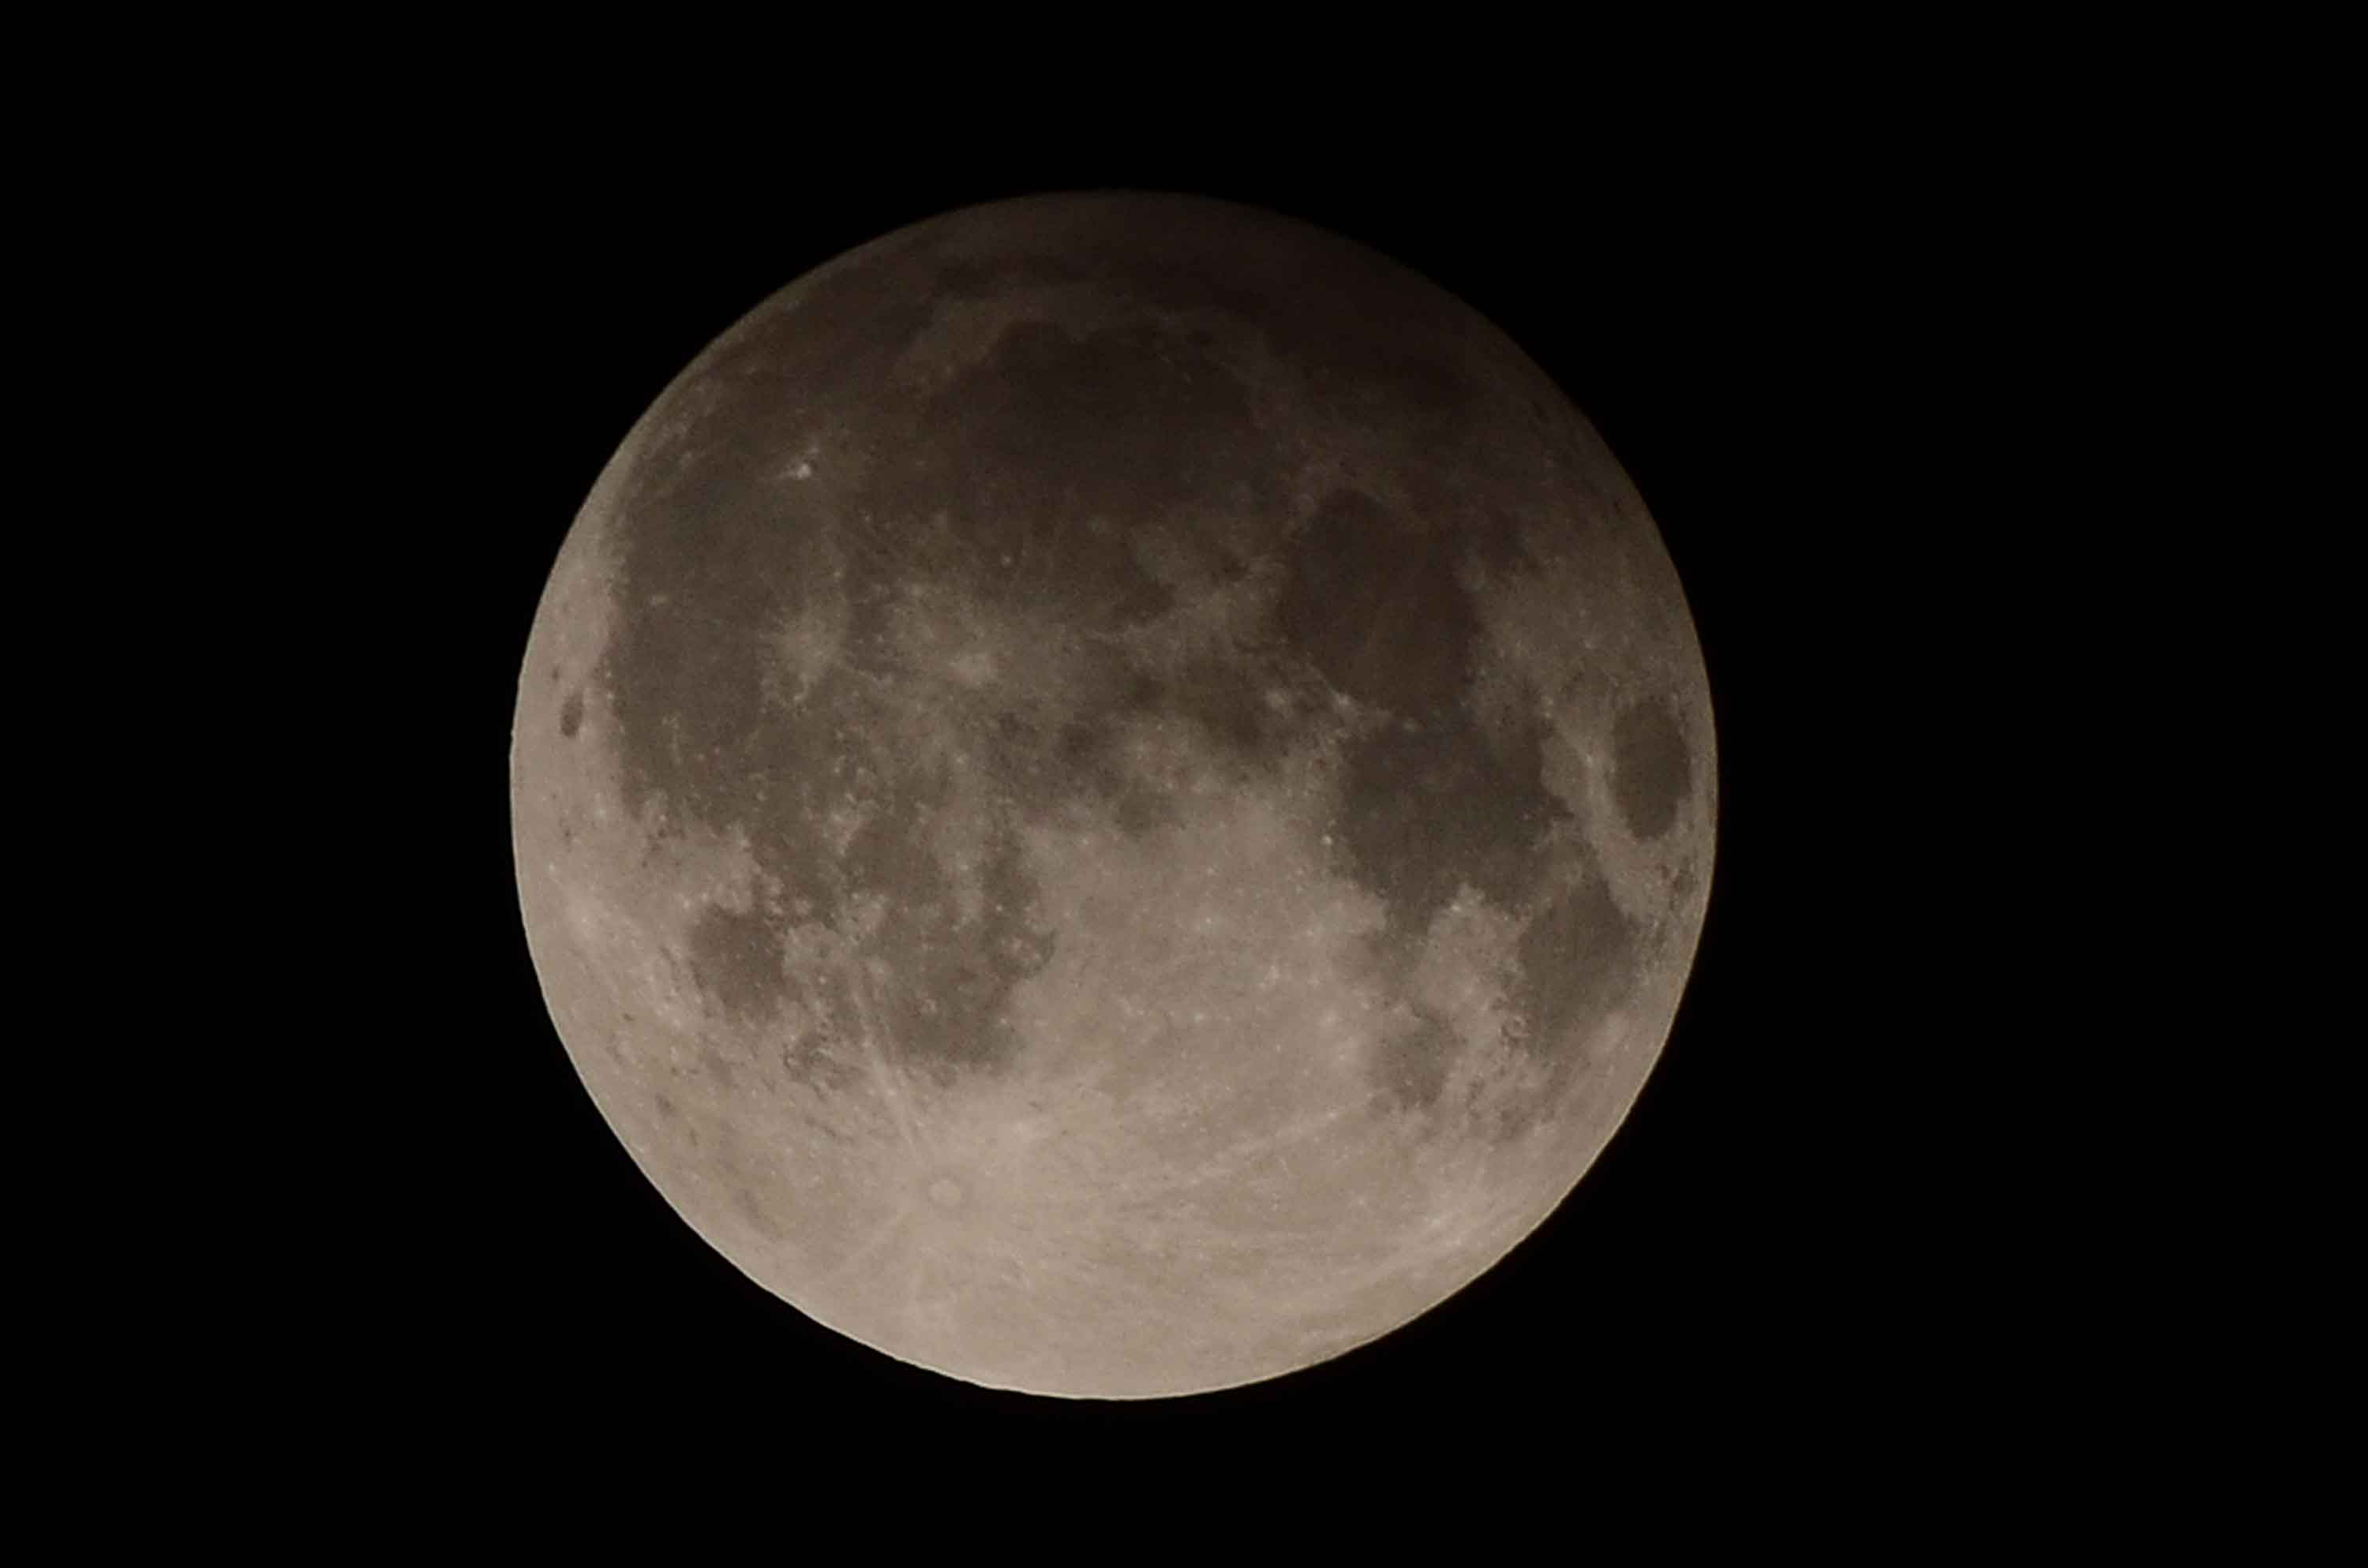 When is the next full moon?